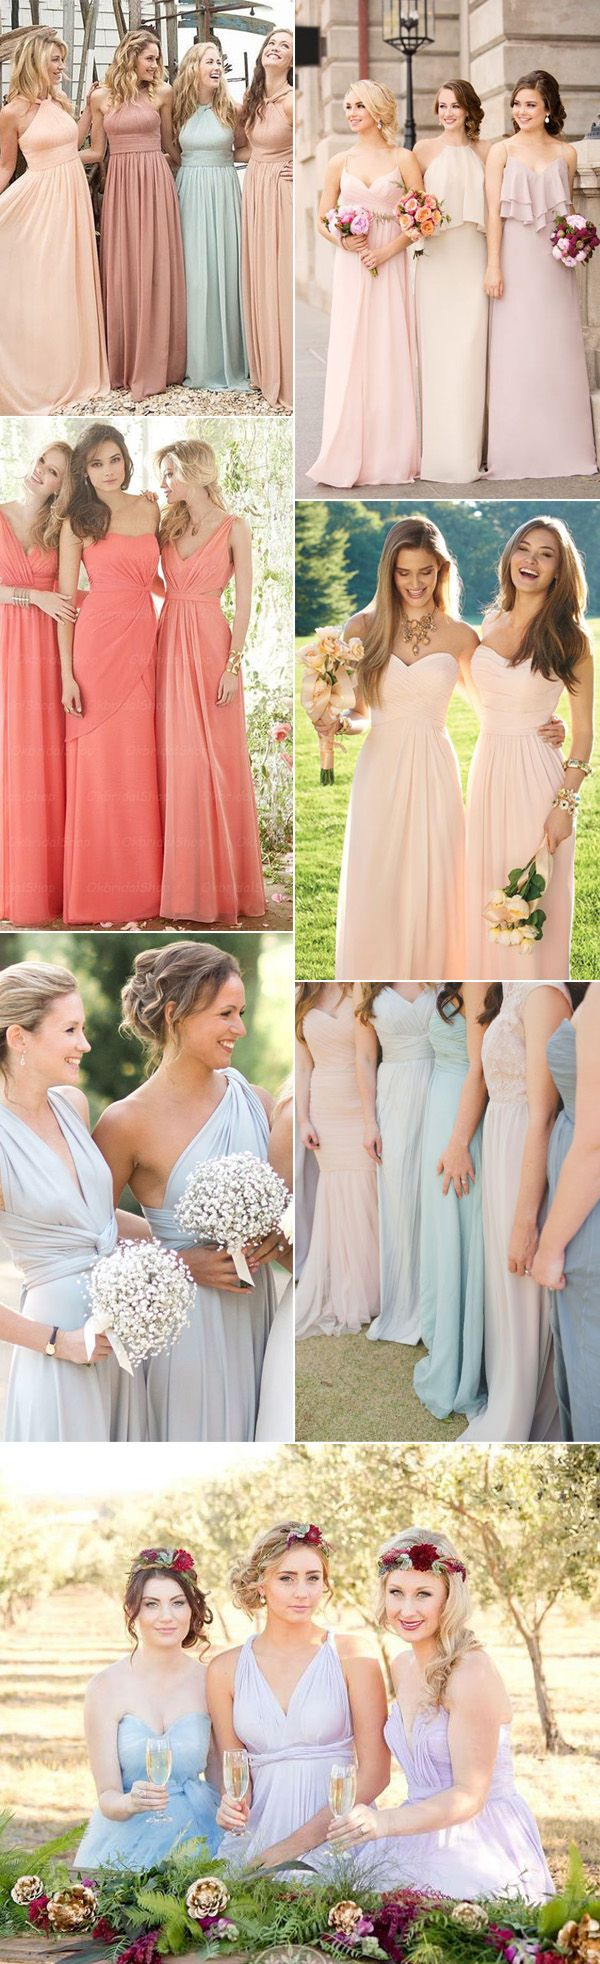 18 best bridesmaid dresses ideas images on pinterest marriage top 10 bridesmaid dresses styles for 2017 wedding ideas ombrellifo Image collections